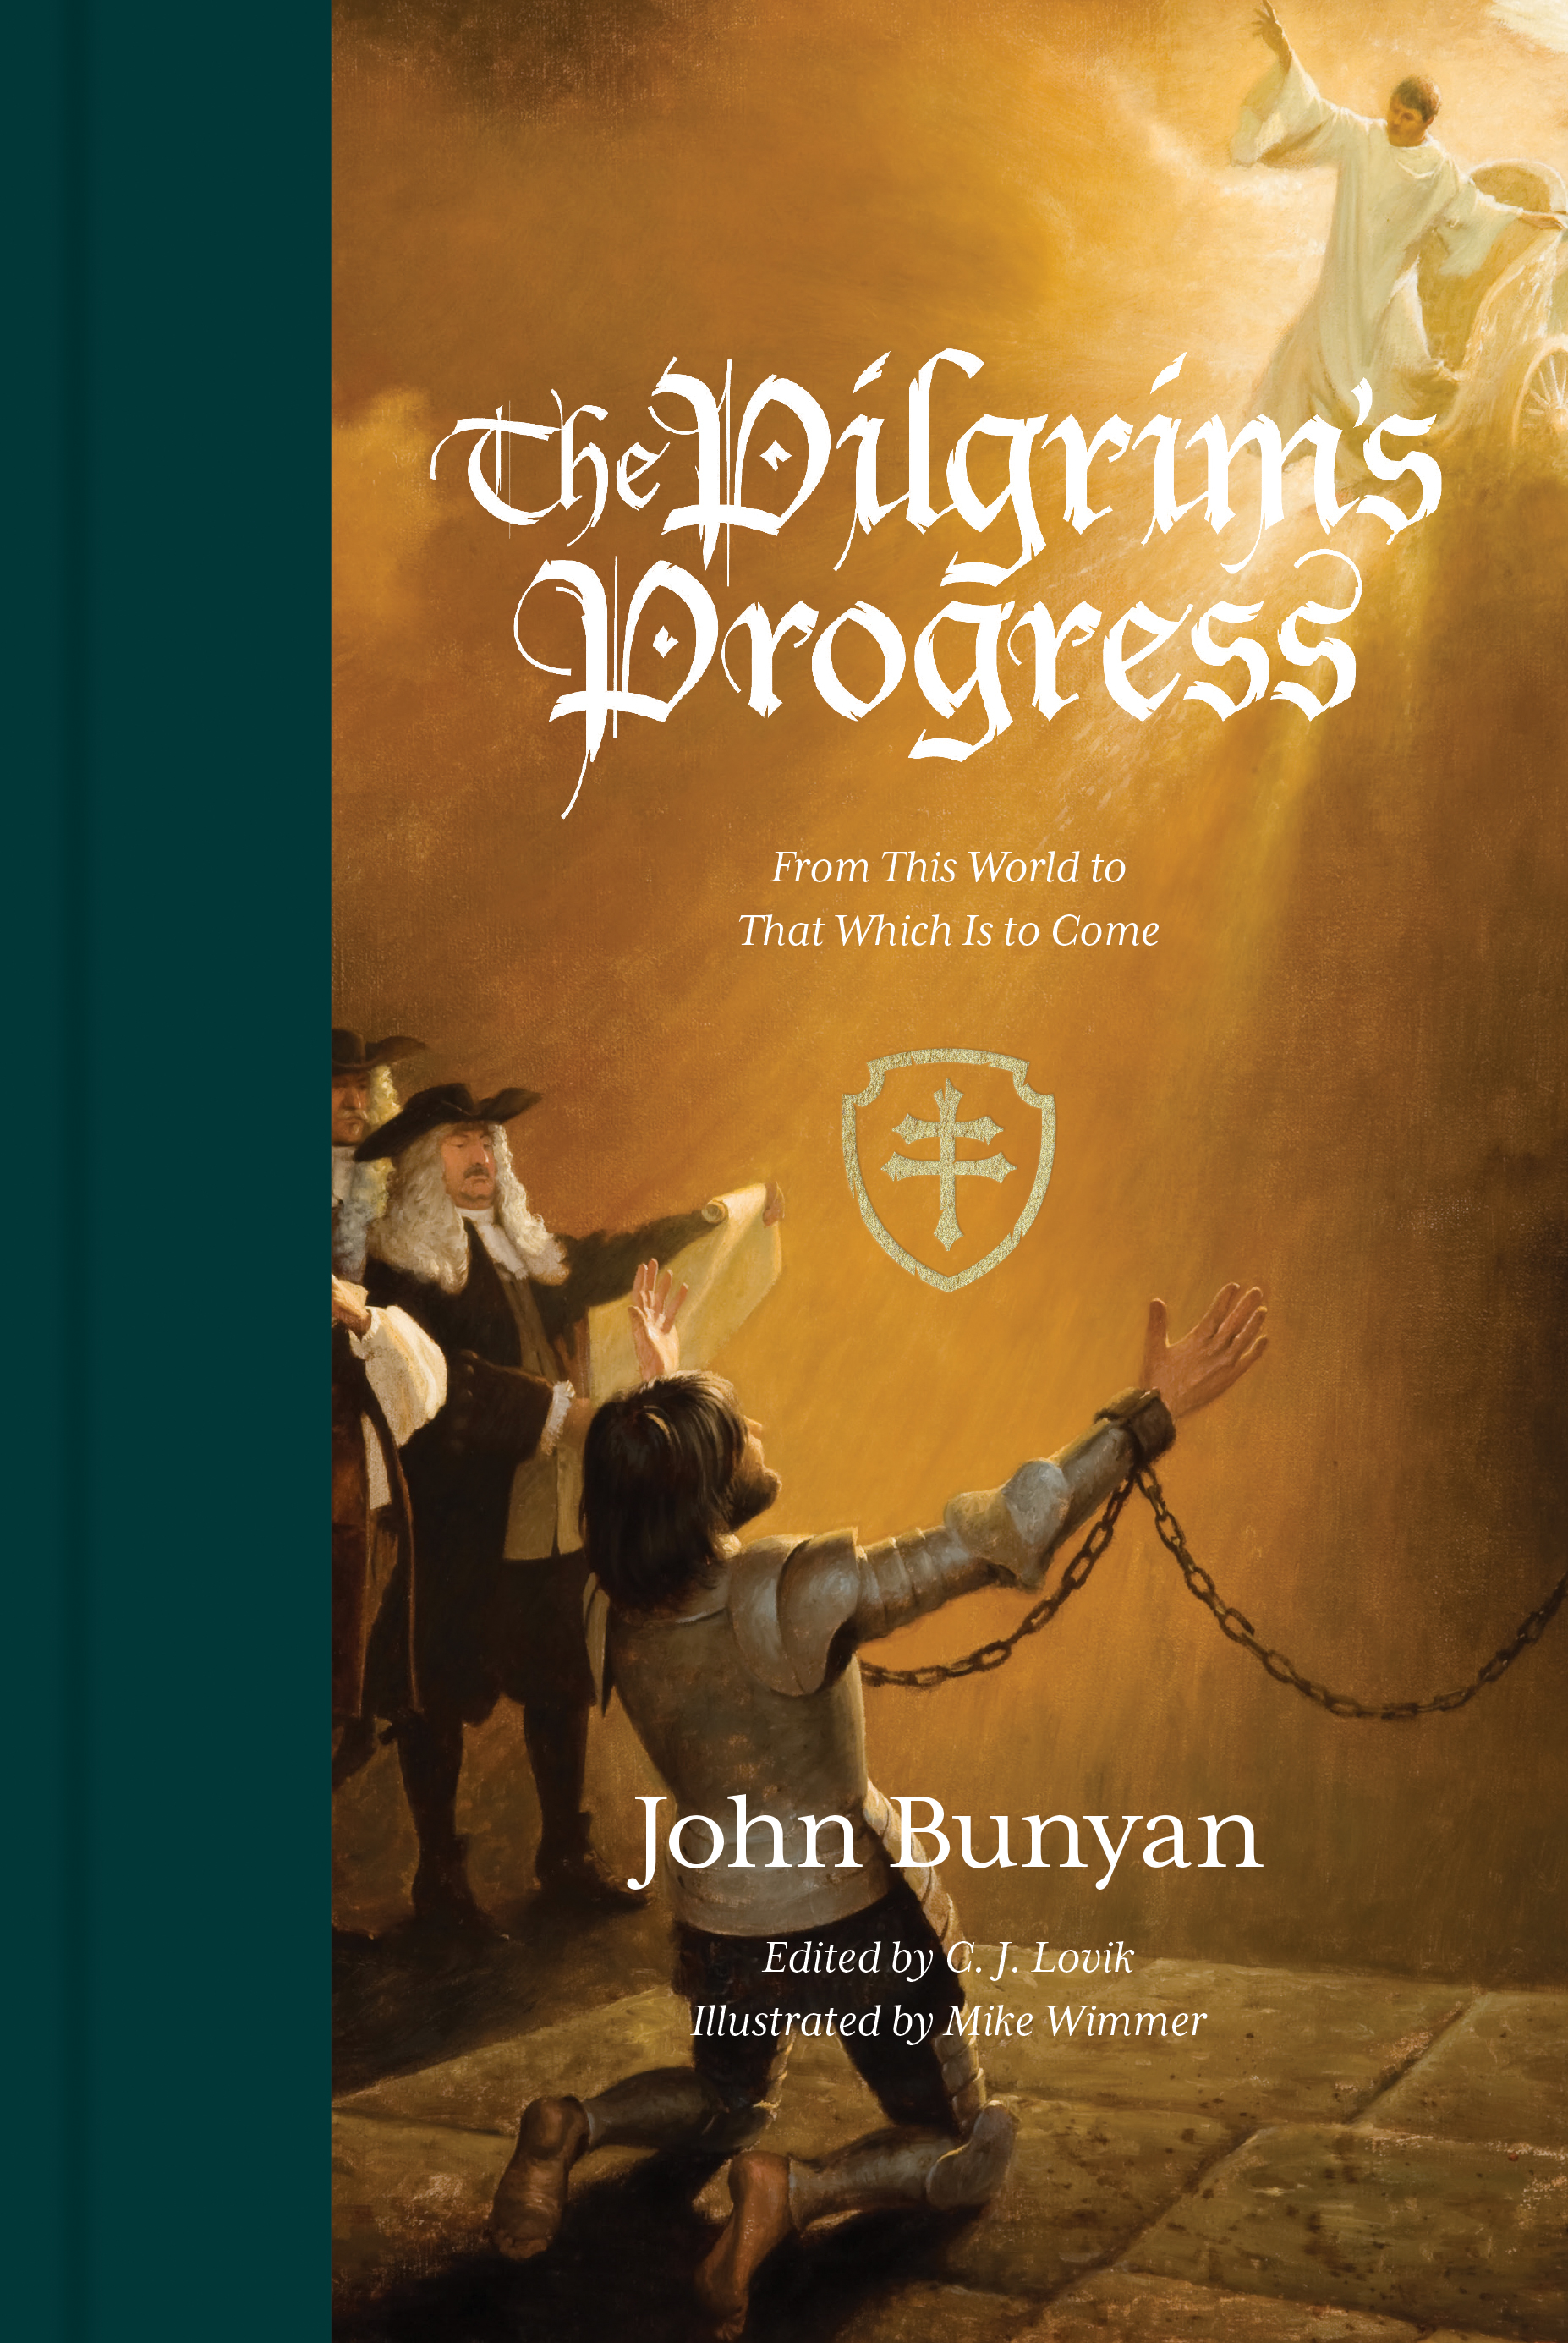 pilgrims progress John bunyan - the pilgrim's progress [john bunyan] on amazoncom free shipping on qualifying offers the pilgrim's progress from this world to that which is to.